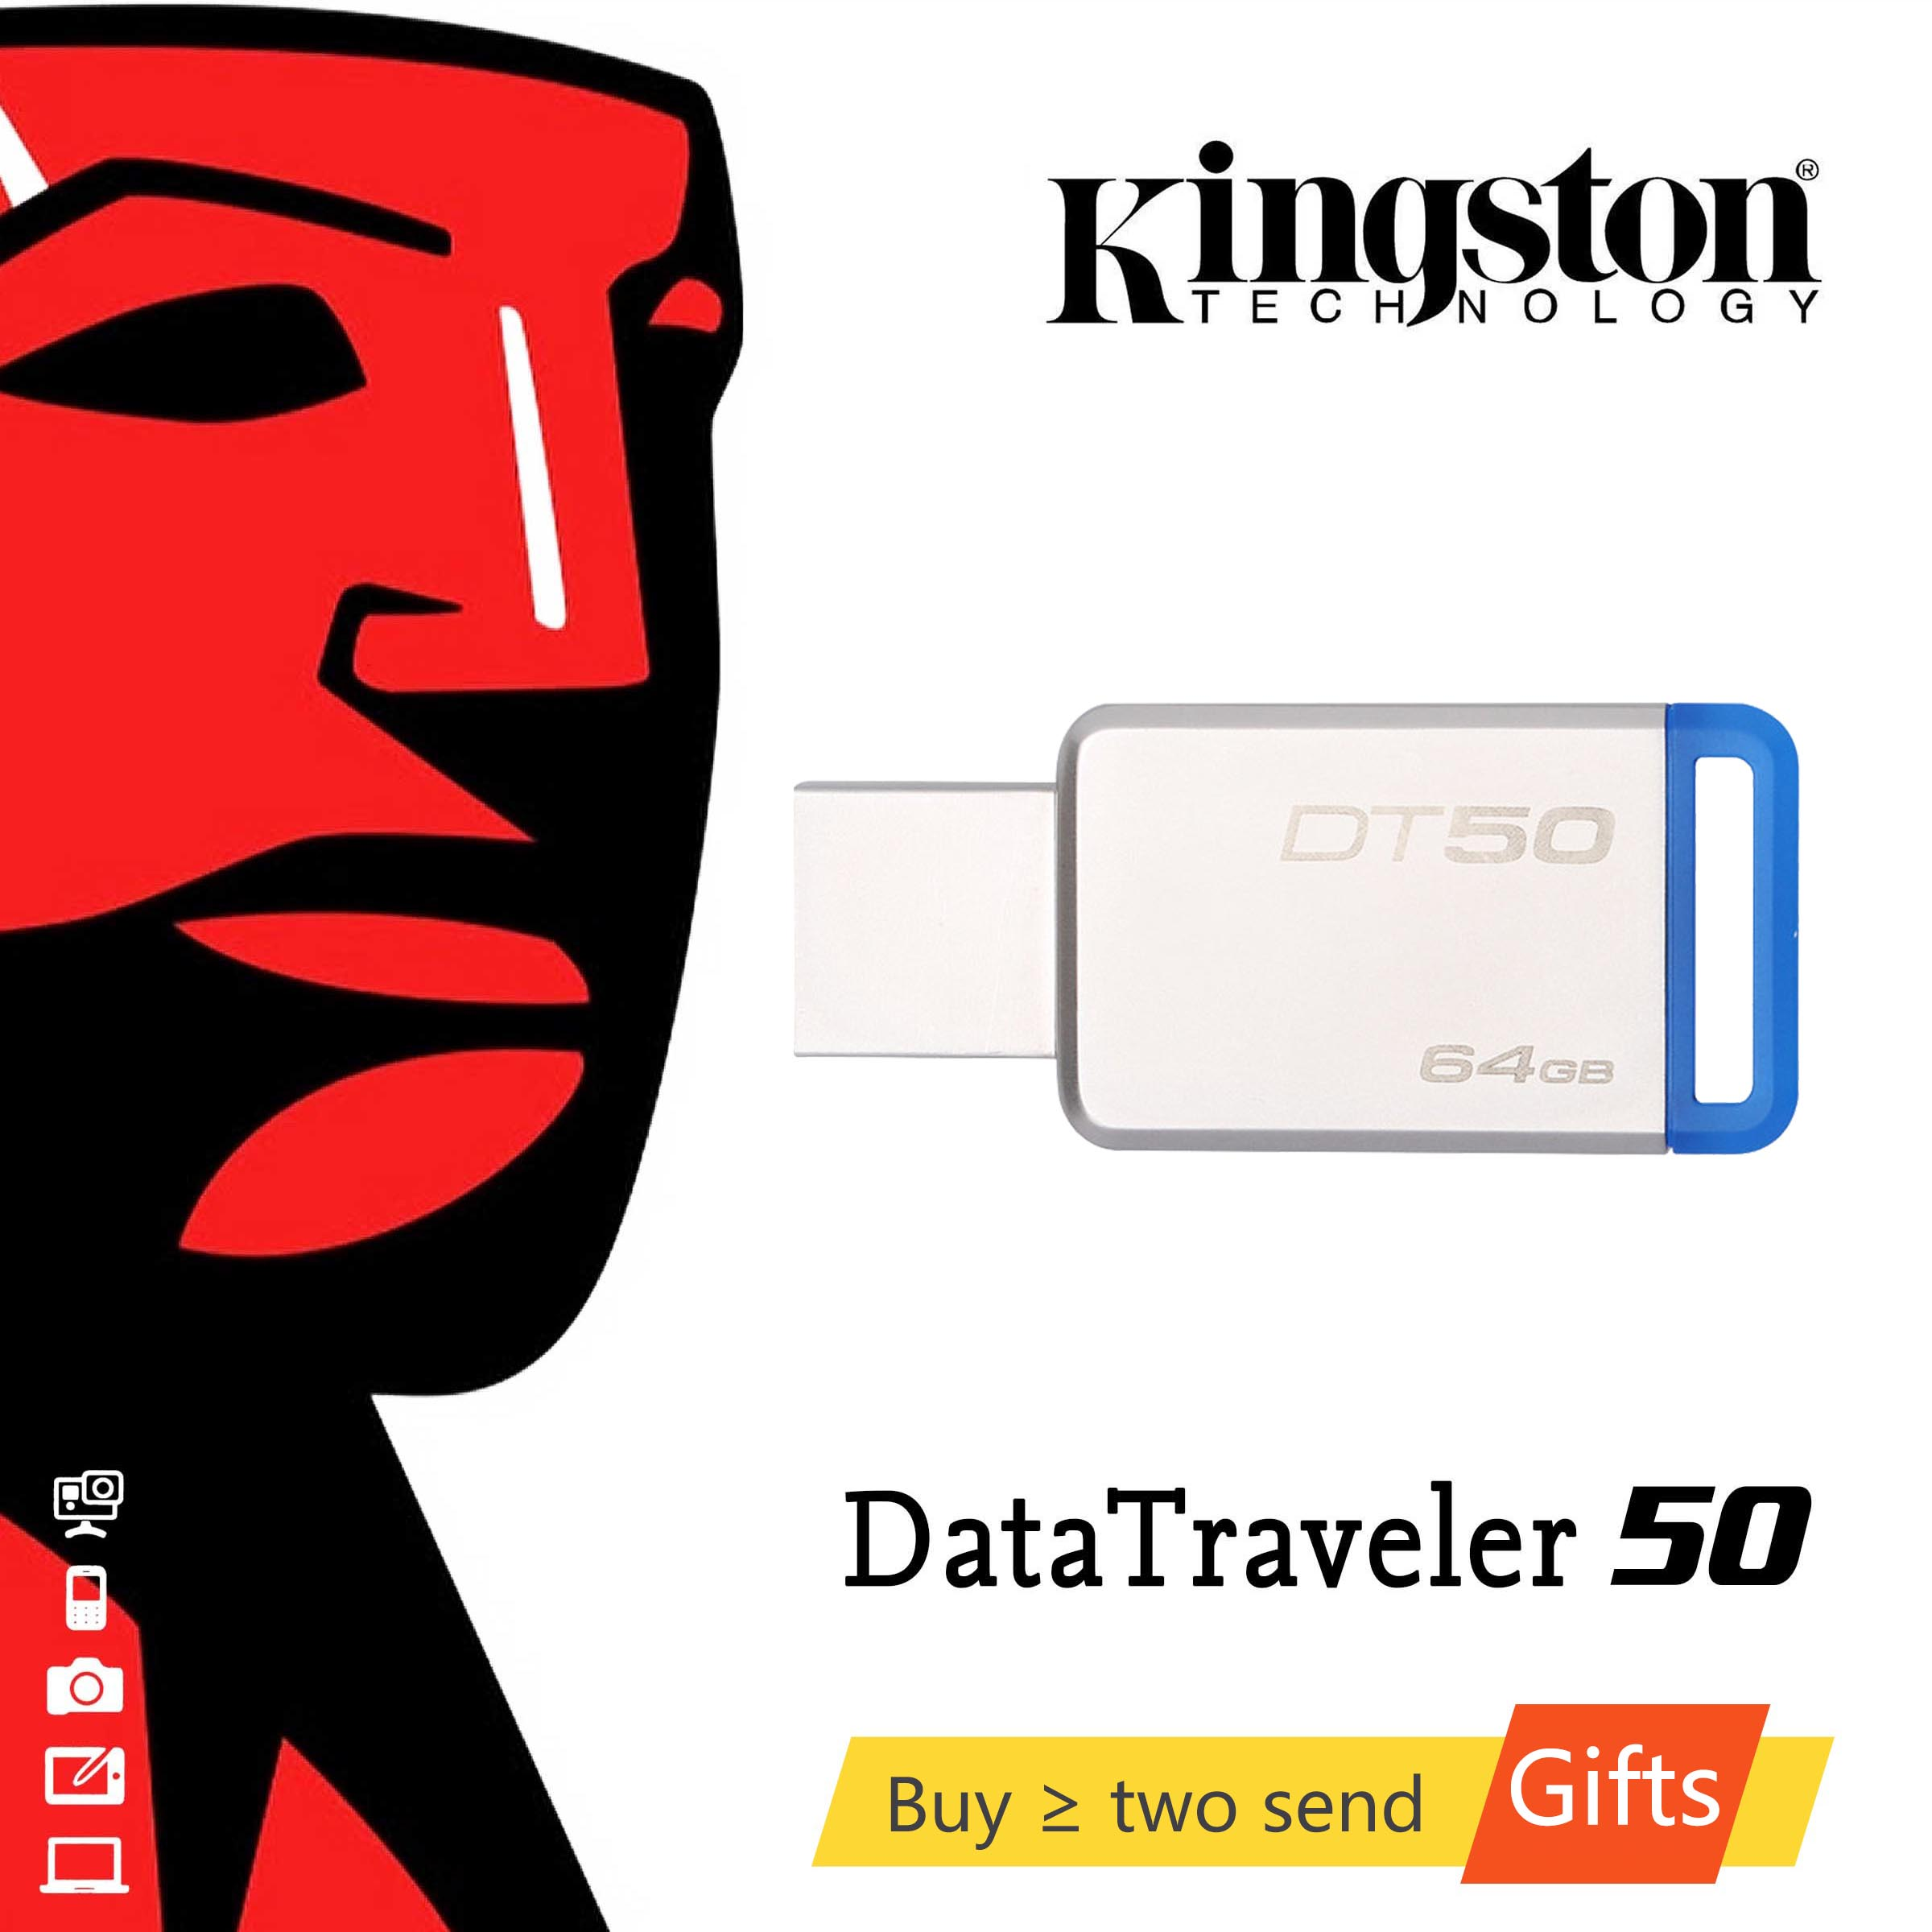 KINGSTON Pendrive 64GB <font><b>USB</b></font> <font><b>3.1</b></font> High Speed 16G <font><b>USB</b></font> <font><b>Flash</b></font> Drive 128GB/64GB/32GB/16GB/8GB Real Capacity 32G Pendrive <font><b>USB</b></font> Stick 128G image